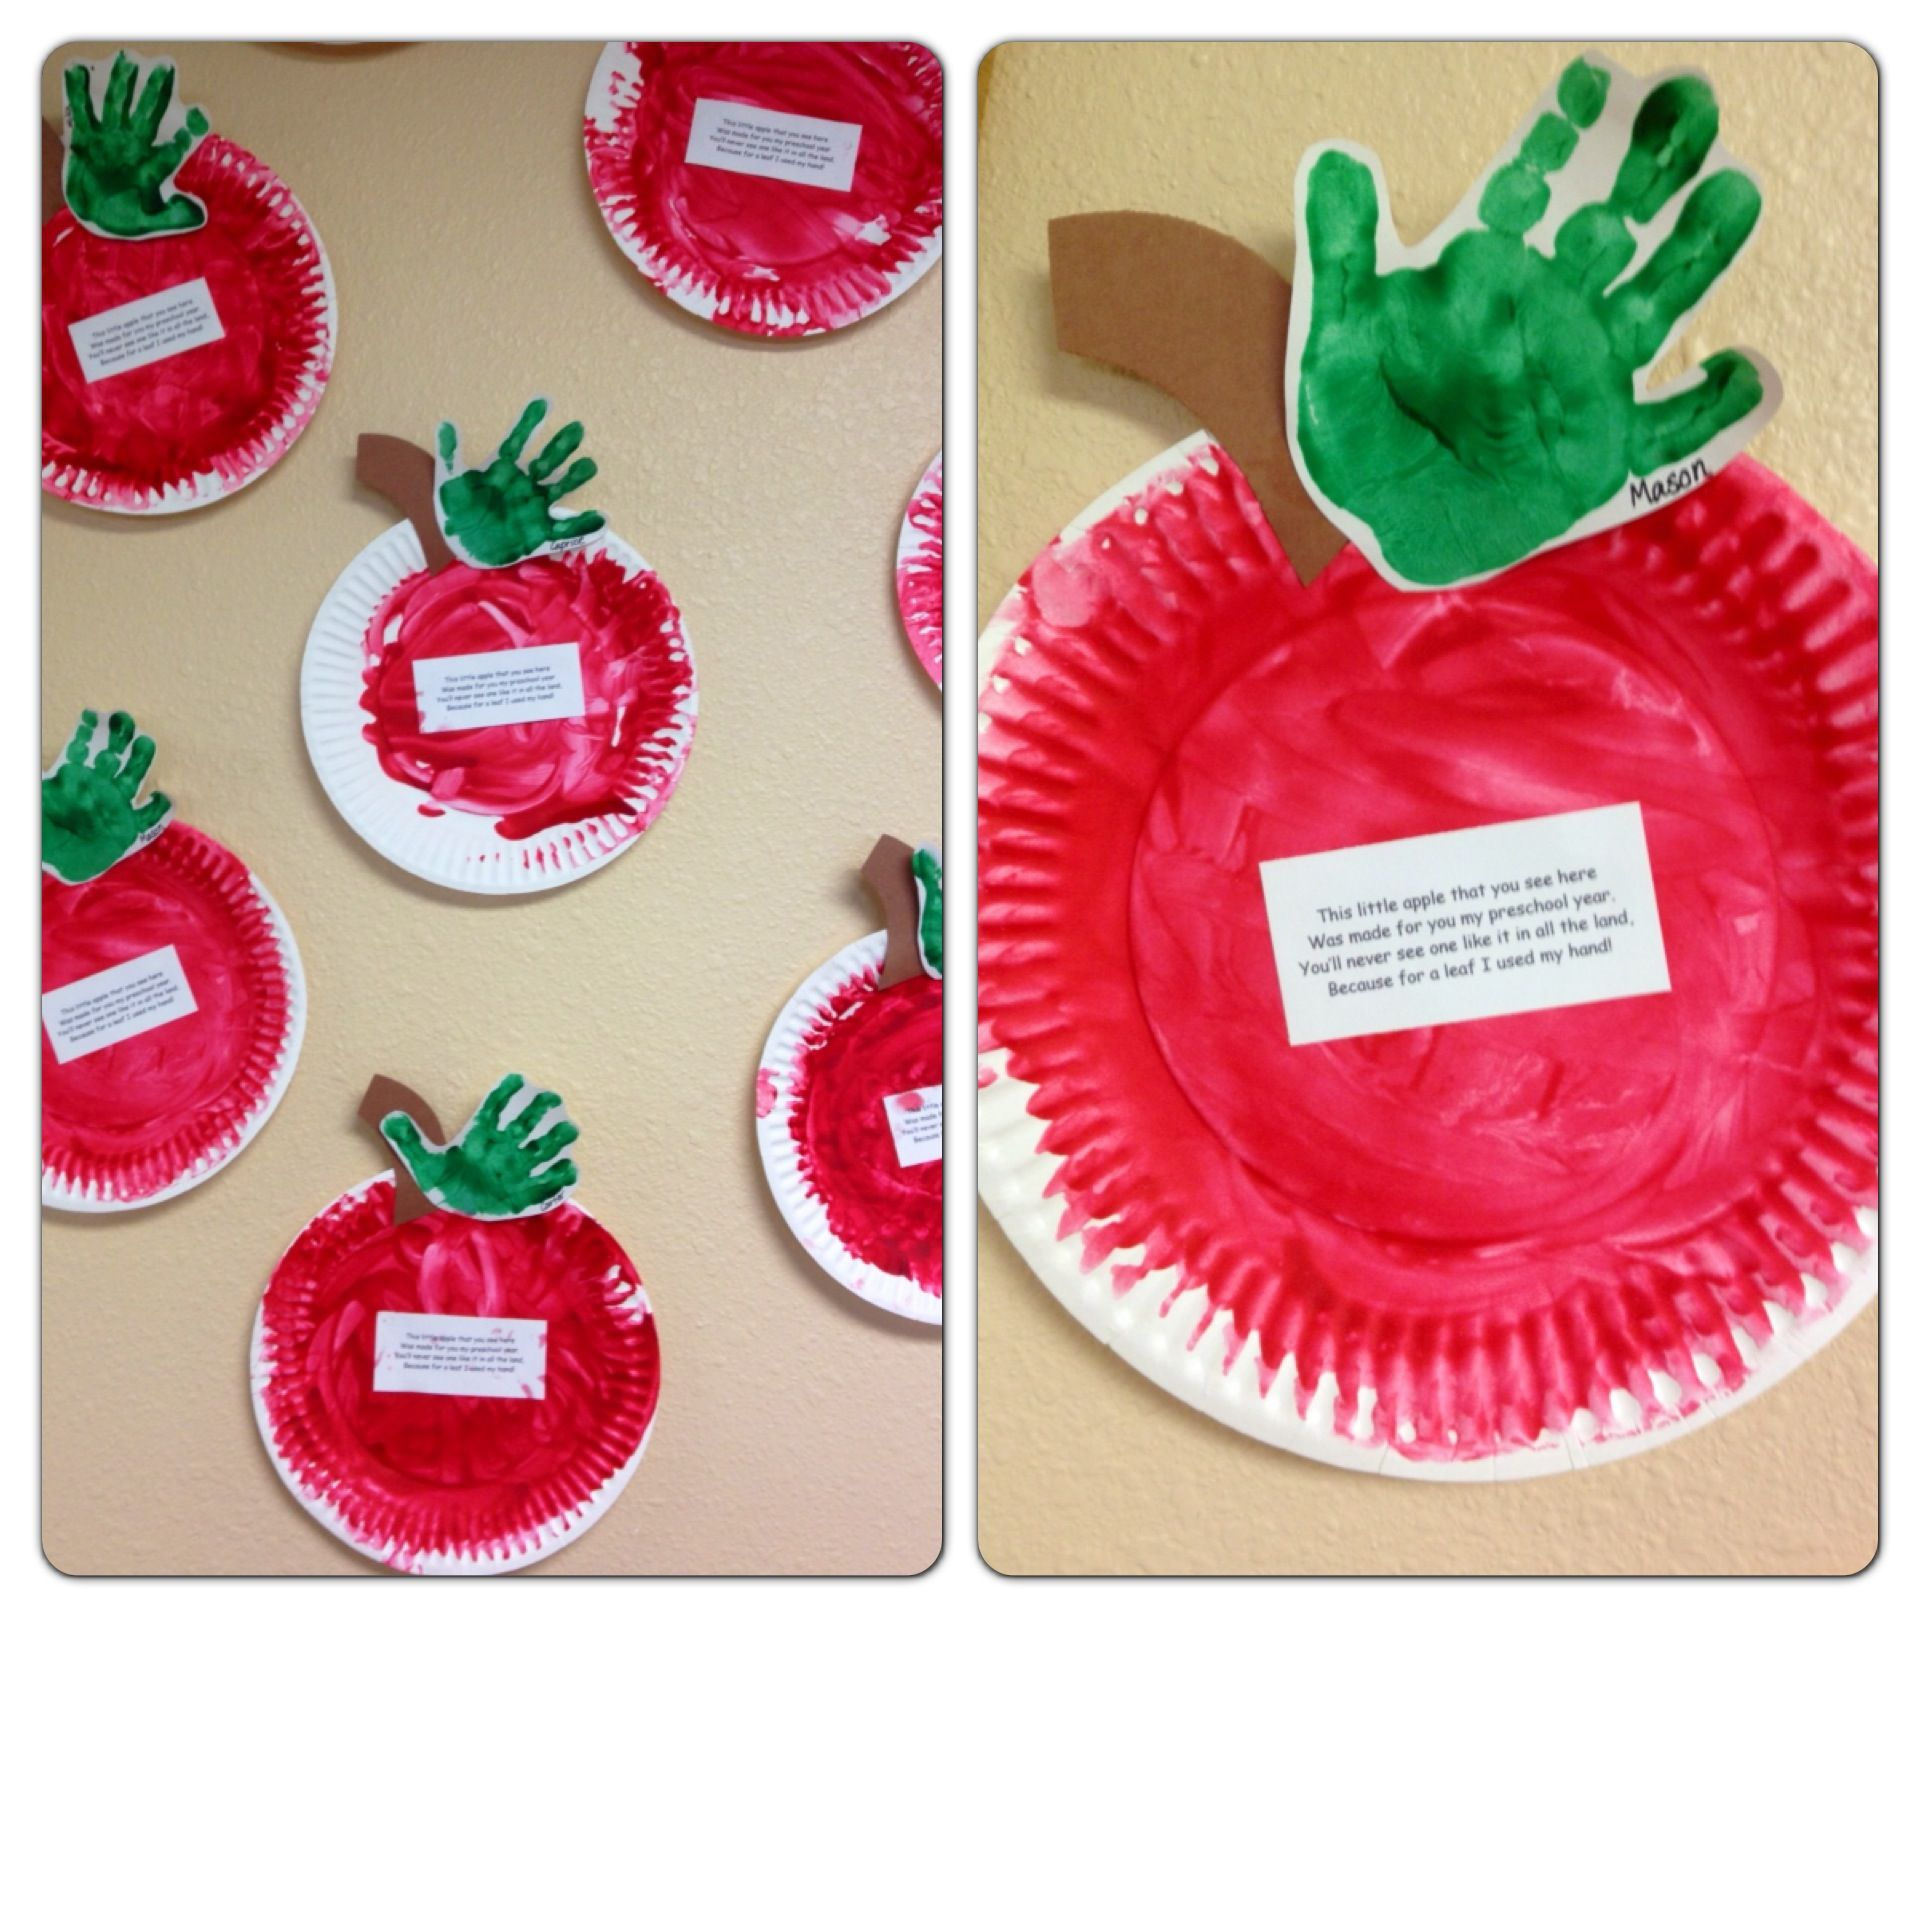 Paper Plate Apples Fingerpainted With Handprint Leafs By